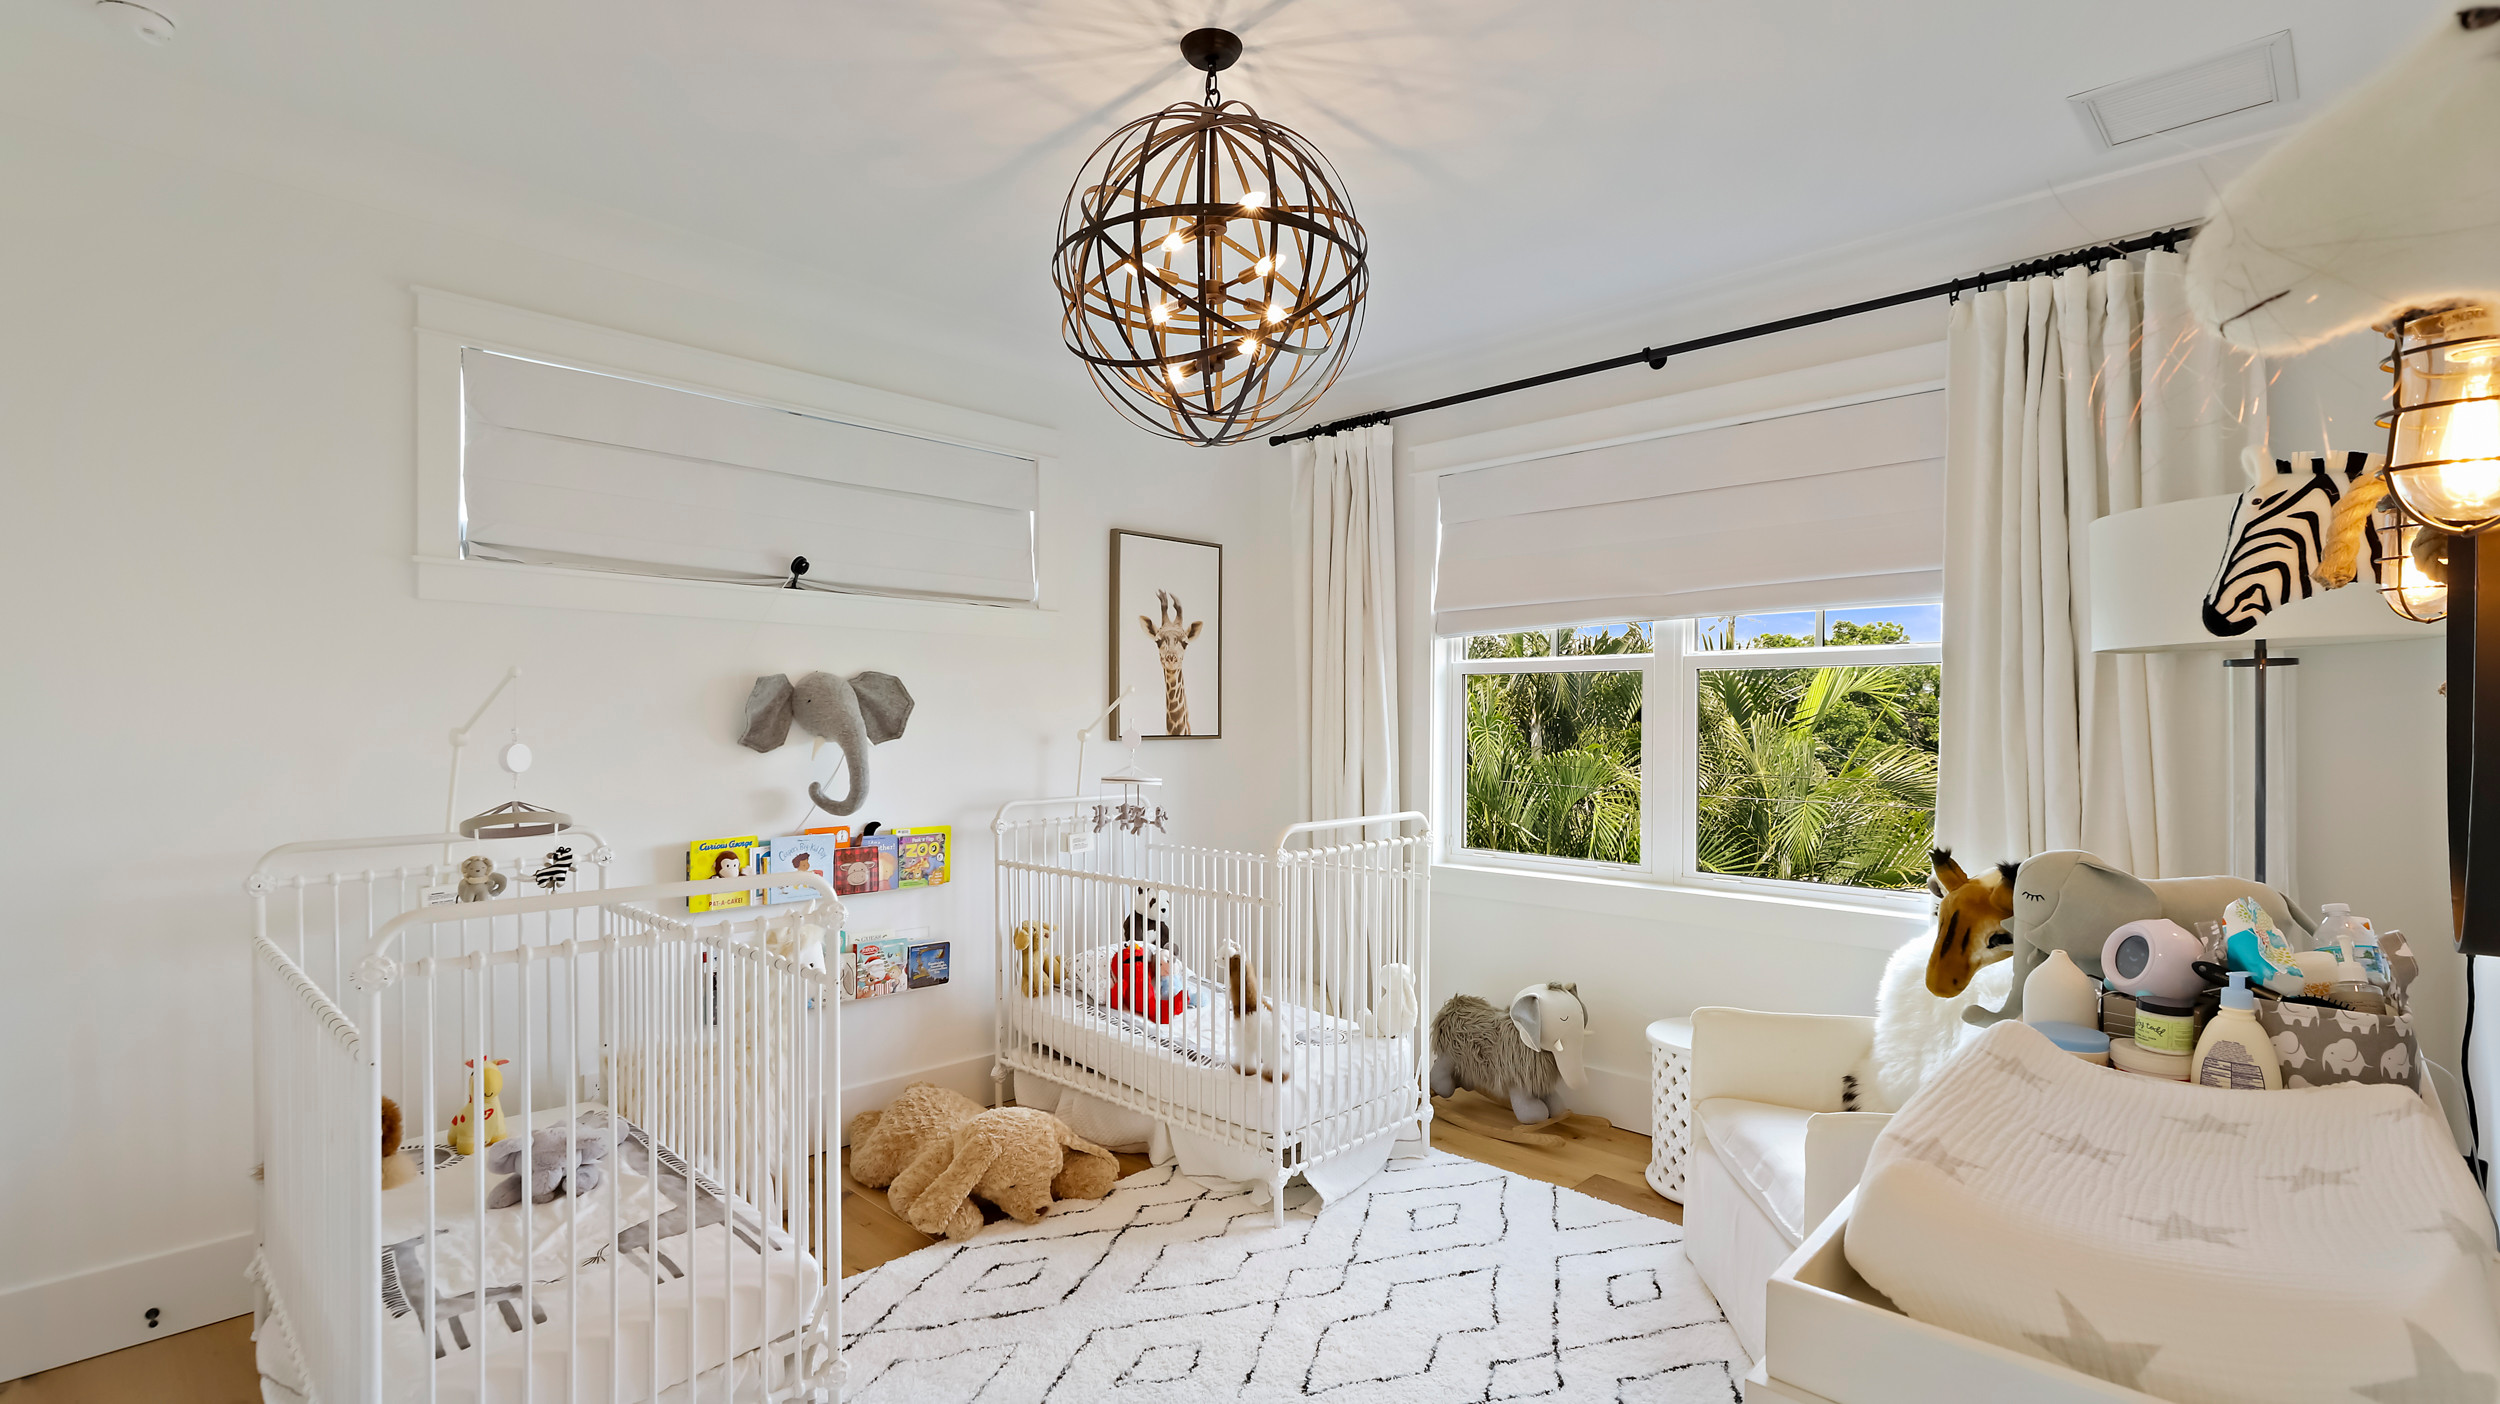 75 Beautiful Nursery Pictures Ideas February 2021 Houzz